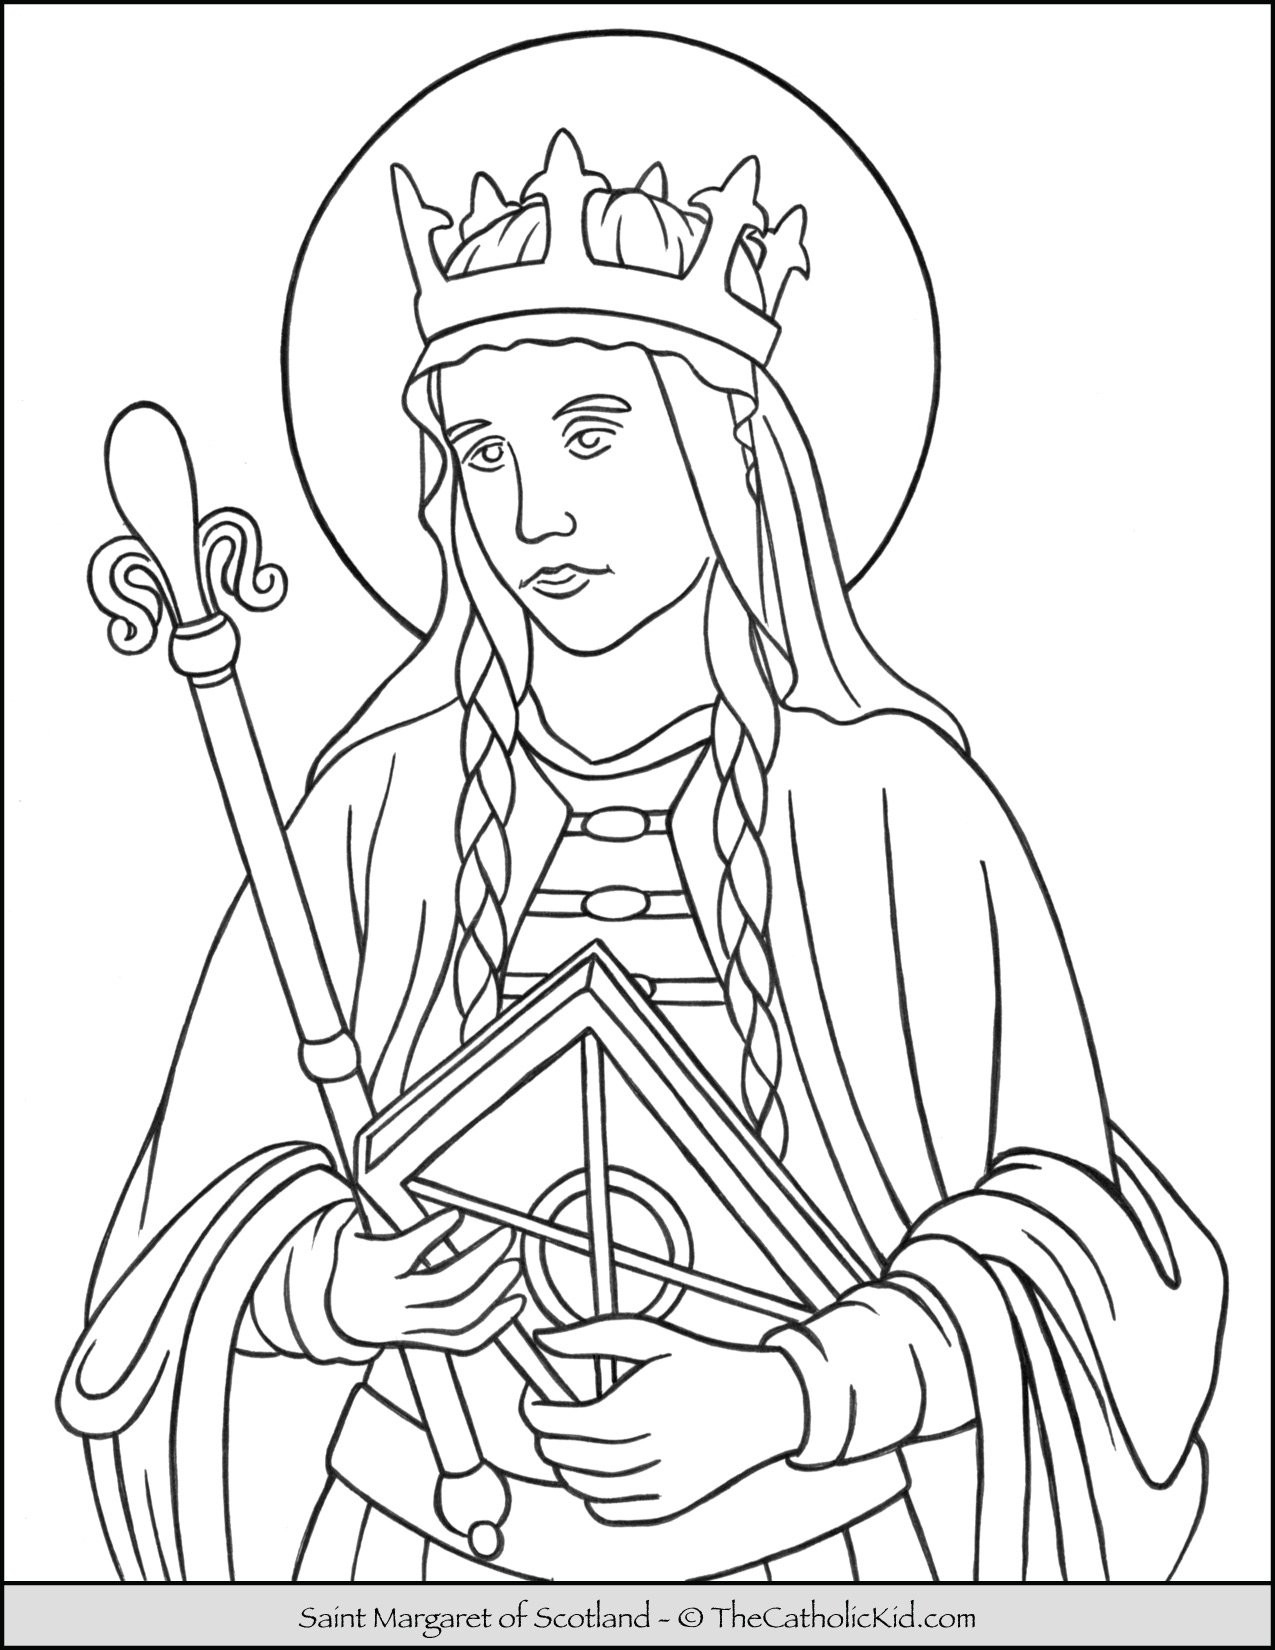 Saint Margaret of Scotland Coloring Page